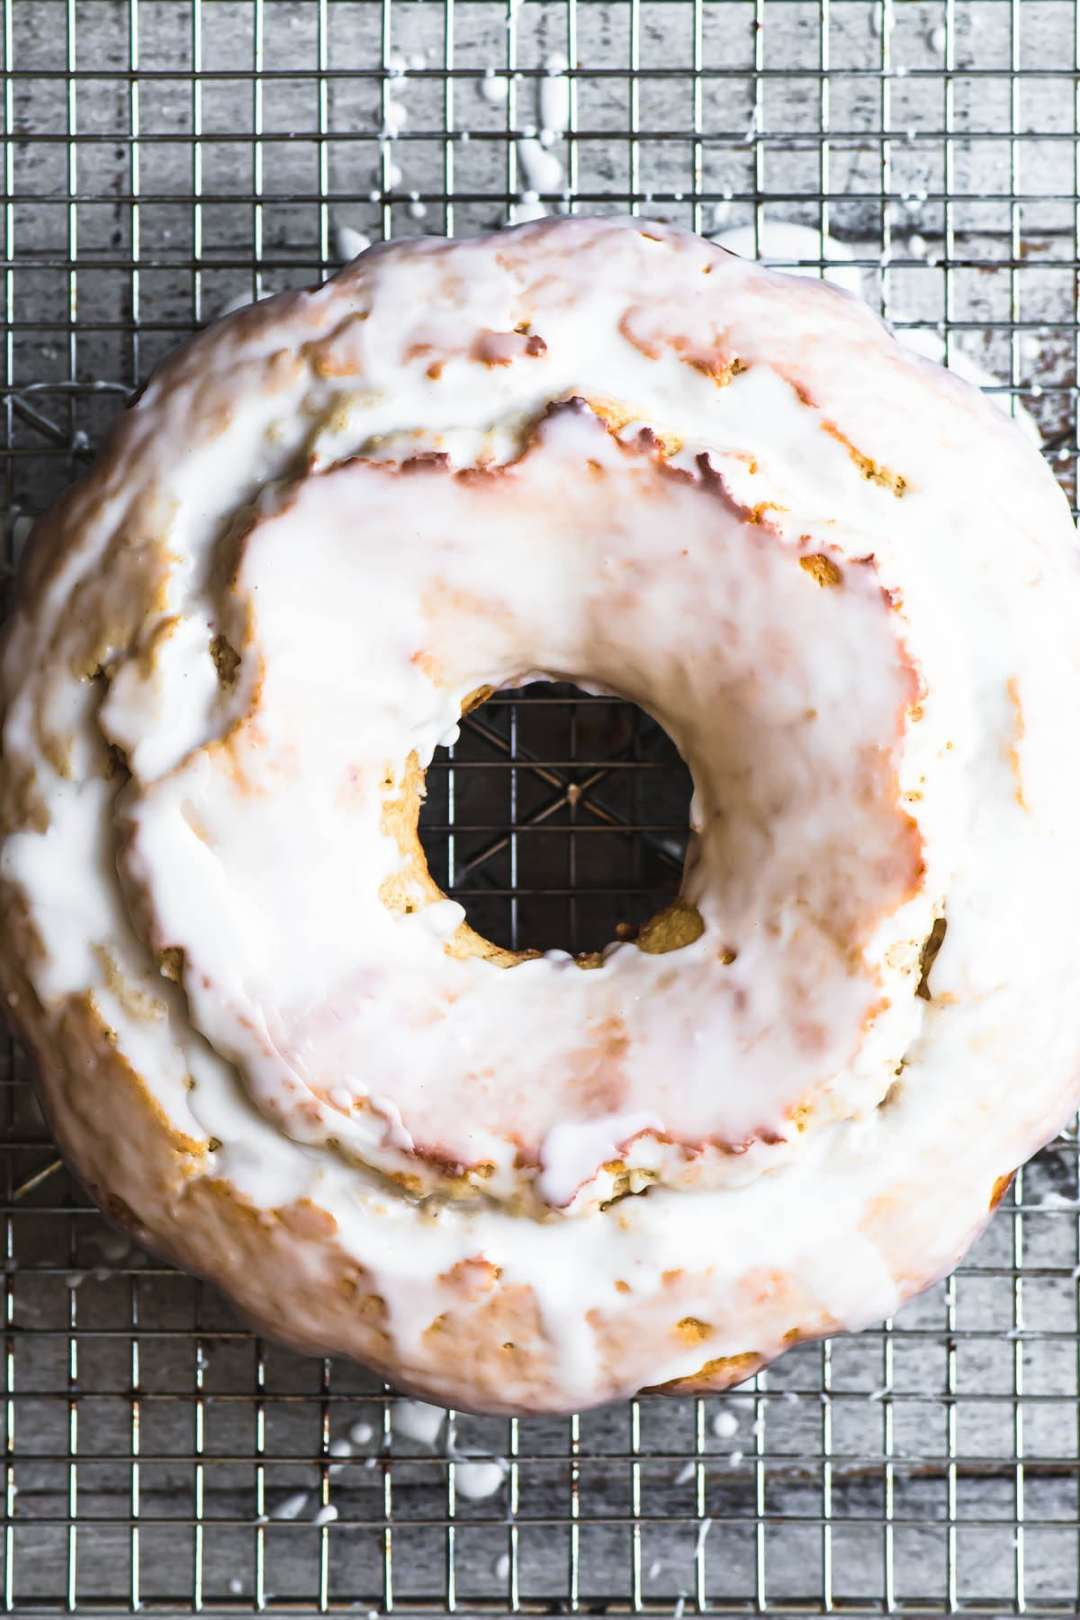 A glazed old fashioned buttermilk doughnut bundt cake on a cooling rack